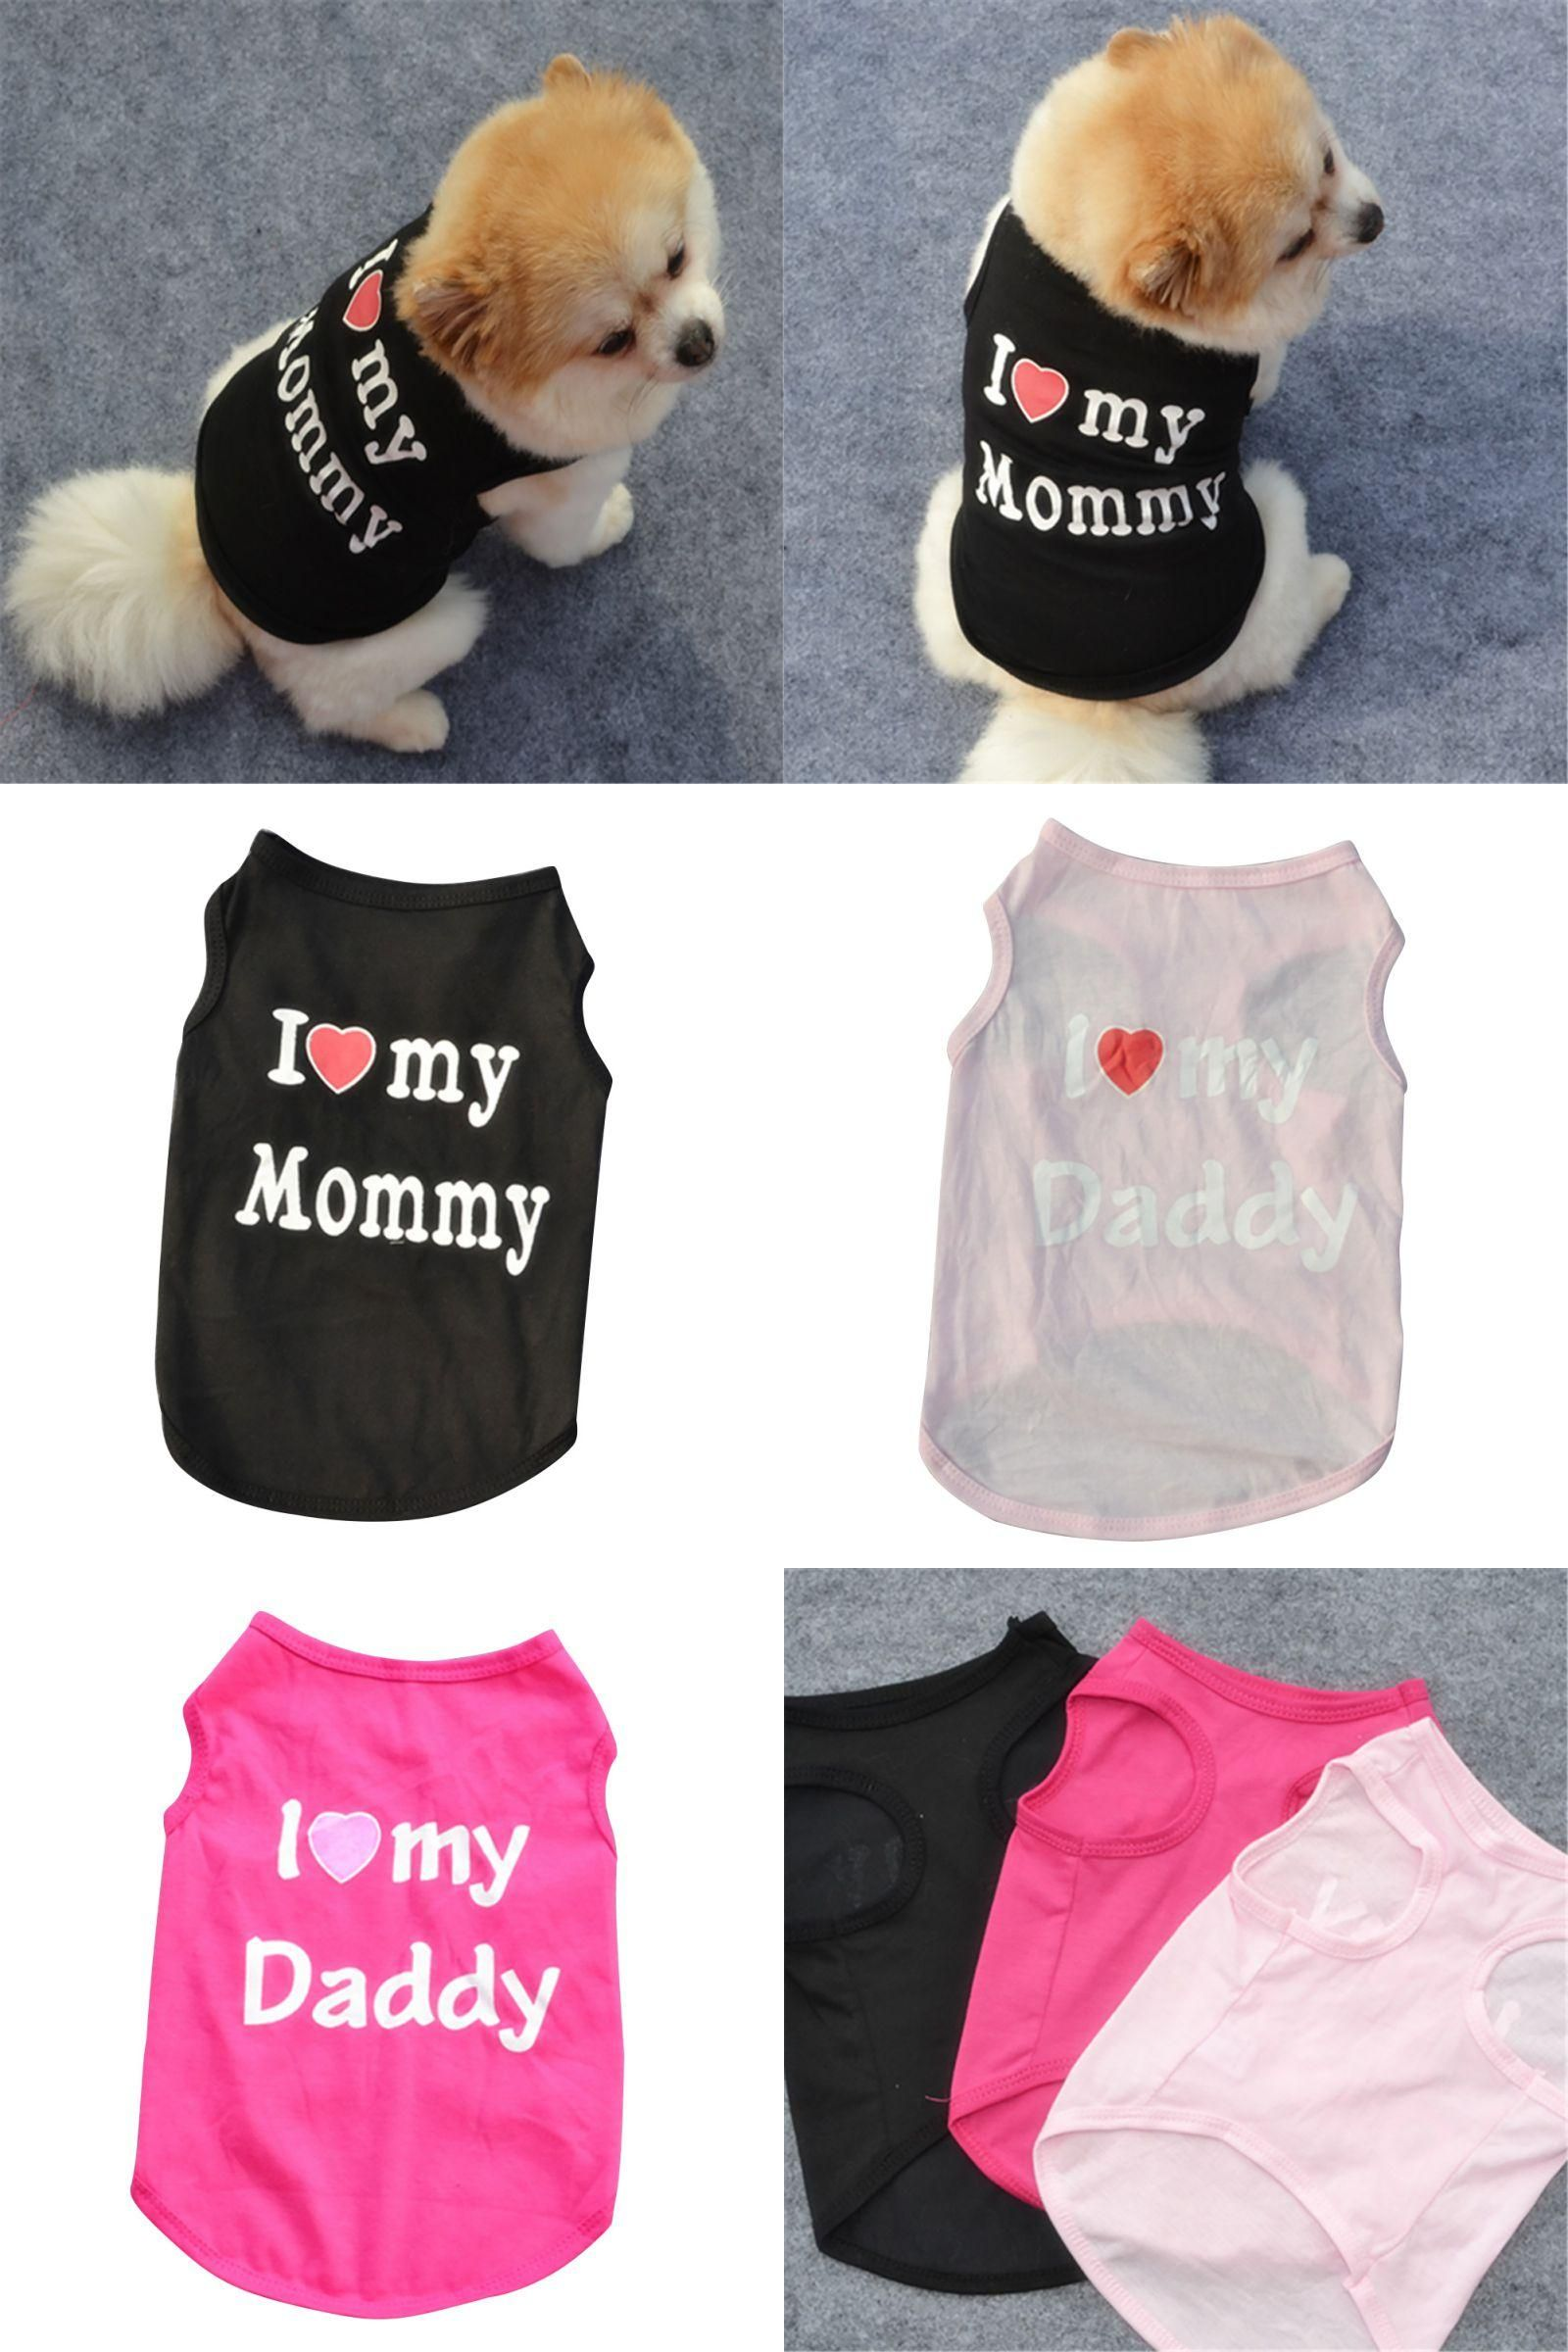 Visit to Buy] 2016 Cute Pet Dog Clothes Pet Cat Clothing Summer